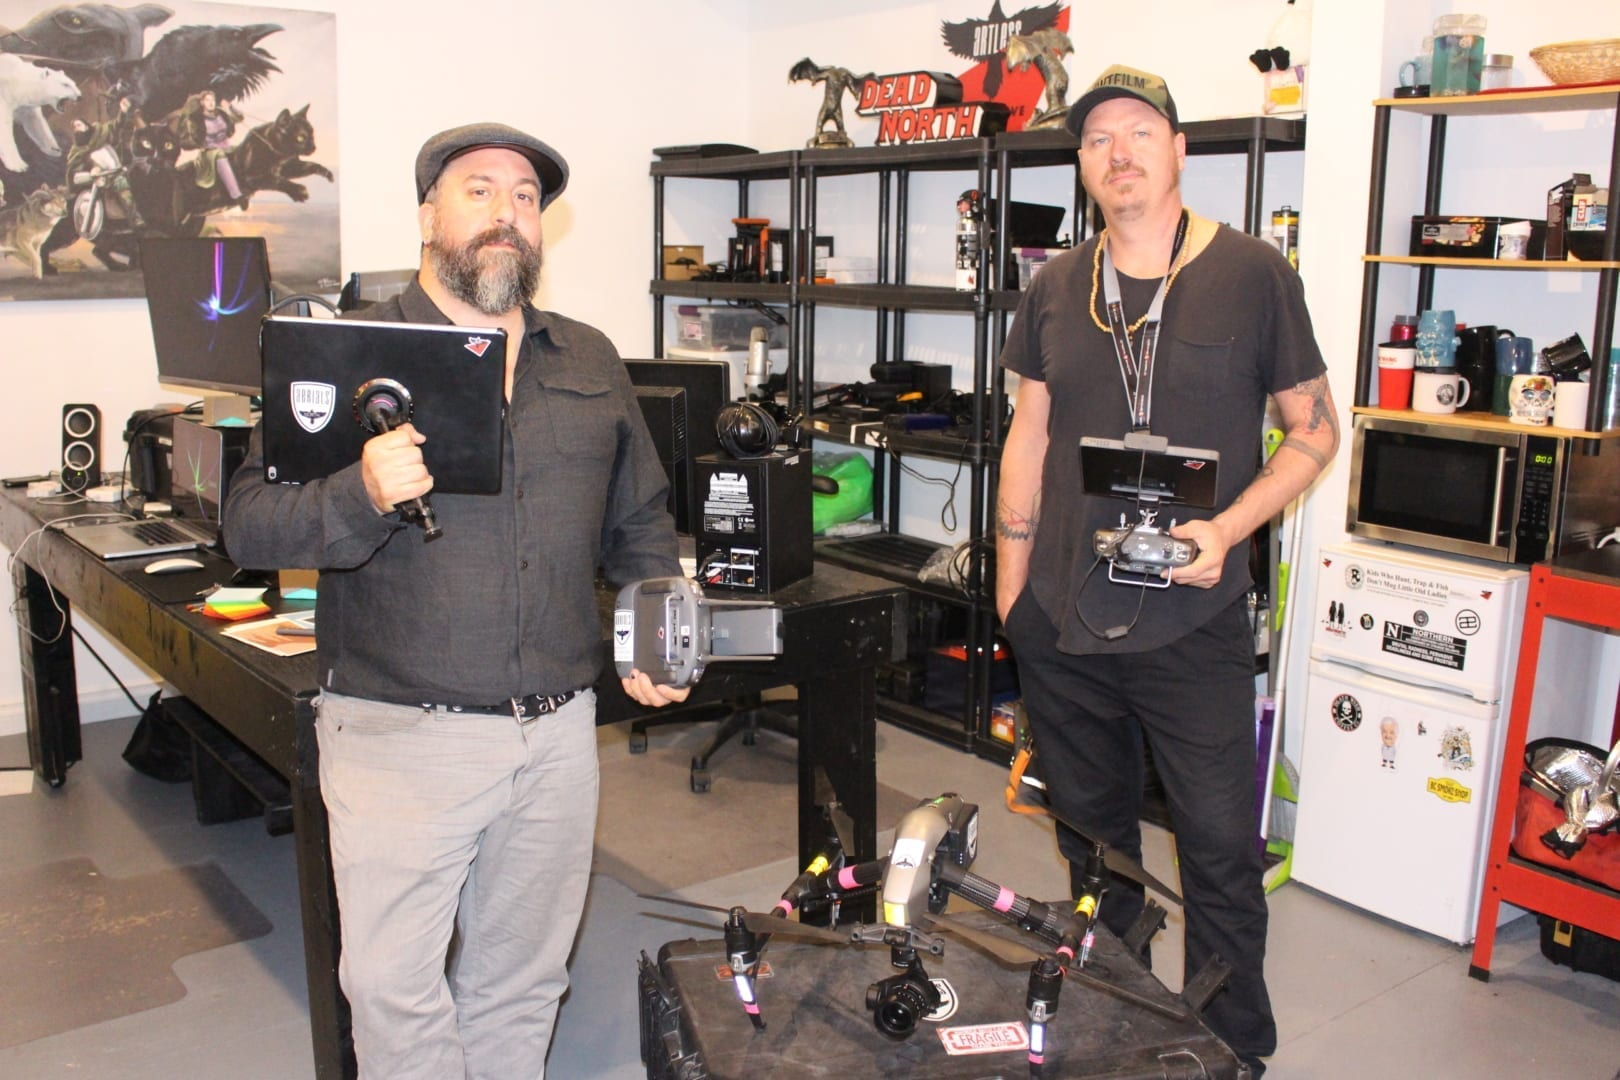 Pablo Saravanja, left, and Jay Bulckaert with their Inspire 2 drone they use for their media production company Aerials North. Bulckaert is the certified pilot who operates the drone while Saravanja works the camera.